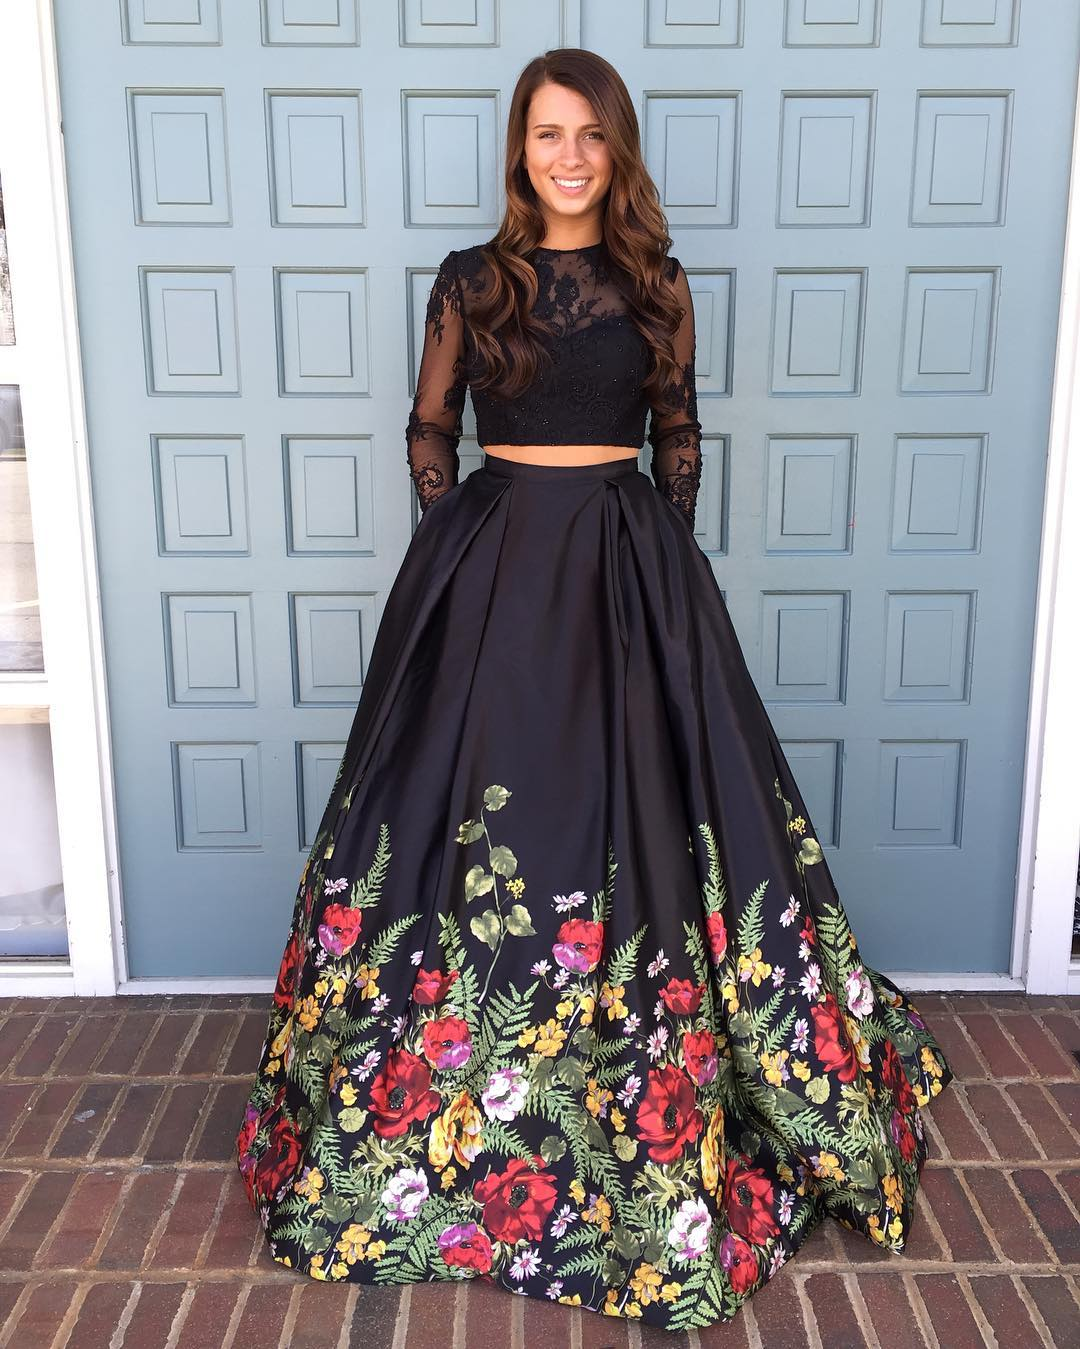 long sleeved prom dresses two piece prom dress,black floral long prom dress, long sleeves prom dress YEWUTDB